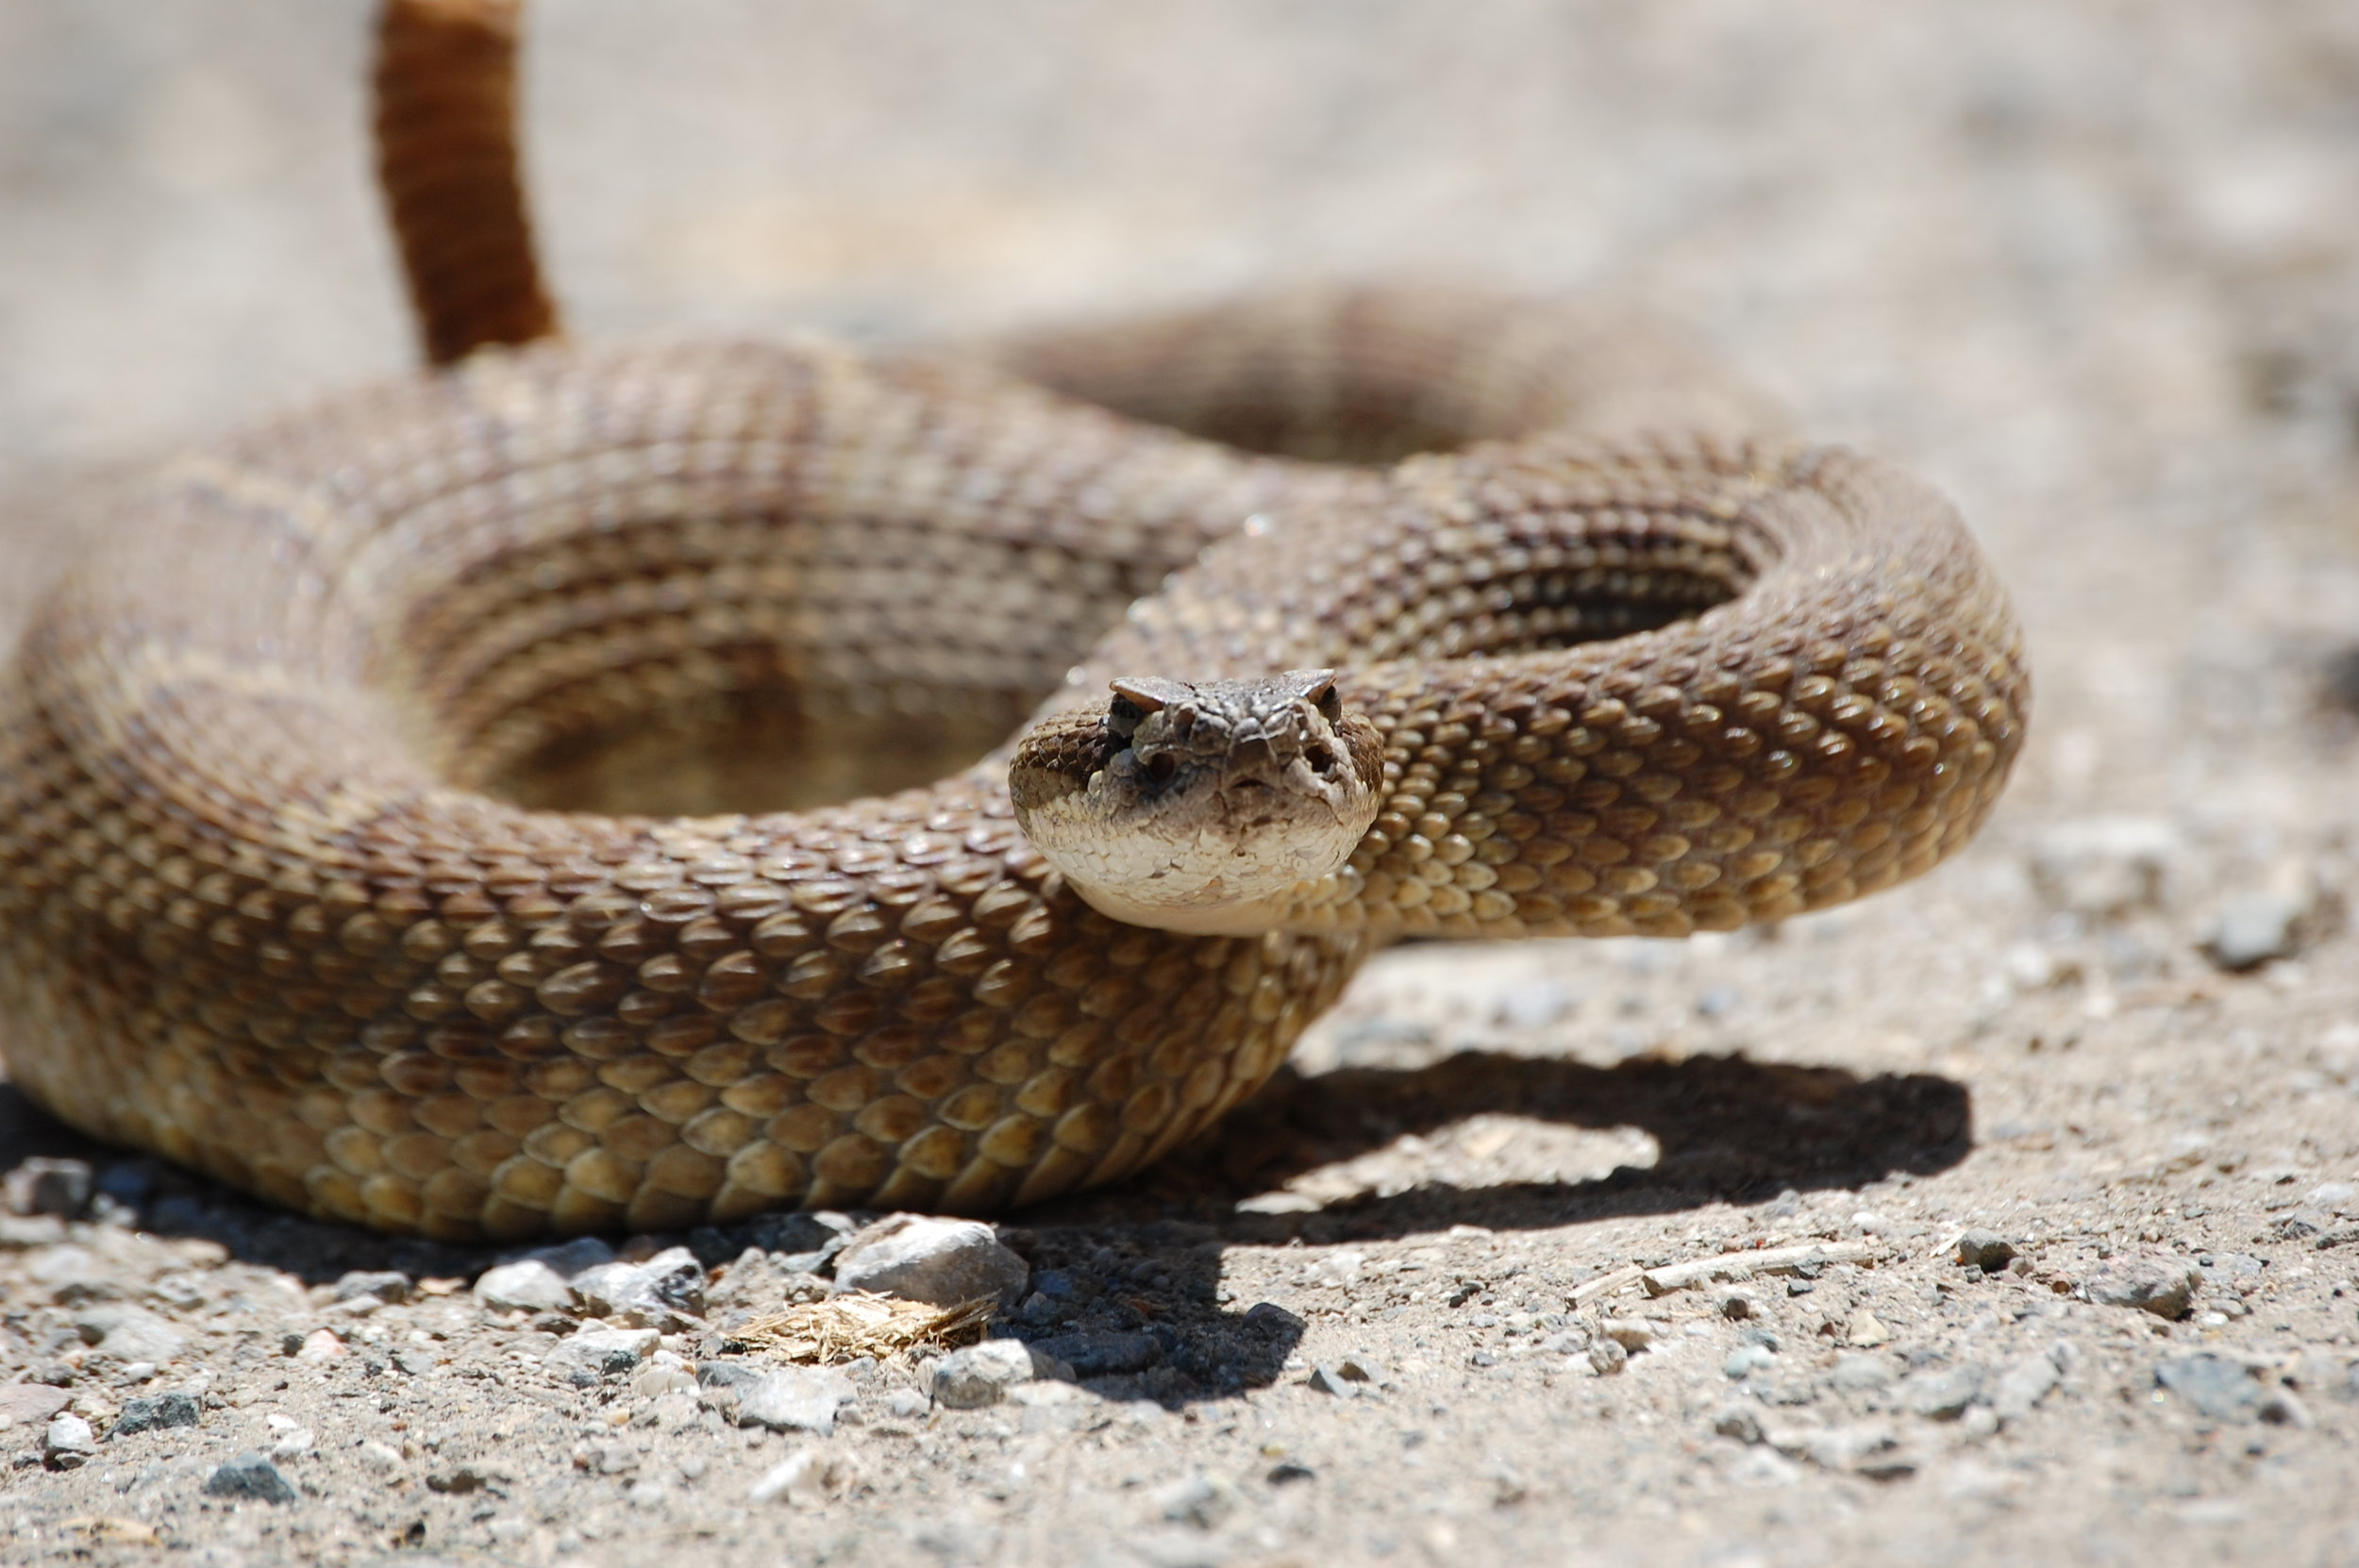 Western Rattlesnake ( Crotalus oreganus ). Never - I repeat, NEVER - use a pressure-immobilization bandage for a viper bite (this includes rattlesnakes) and never use a tourniquet for any snakebite whatsoever. Pressure-immobilization bandaging will make viper bites much worse and could cost you your limb when it could otherwise be saved!